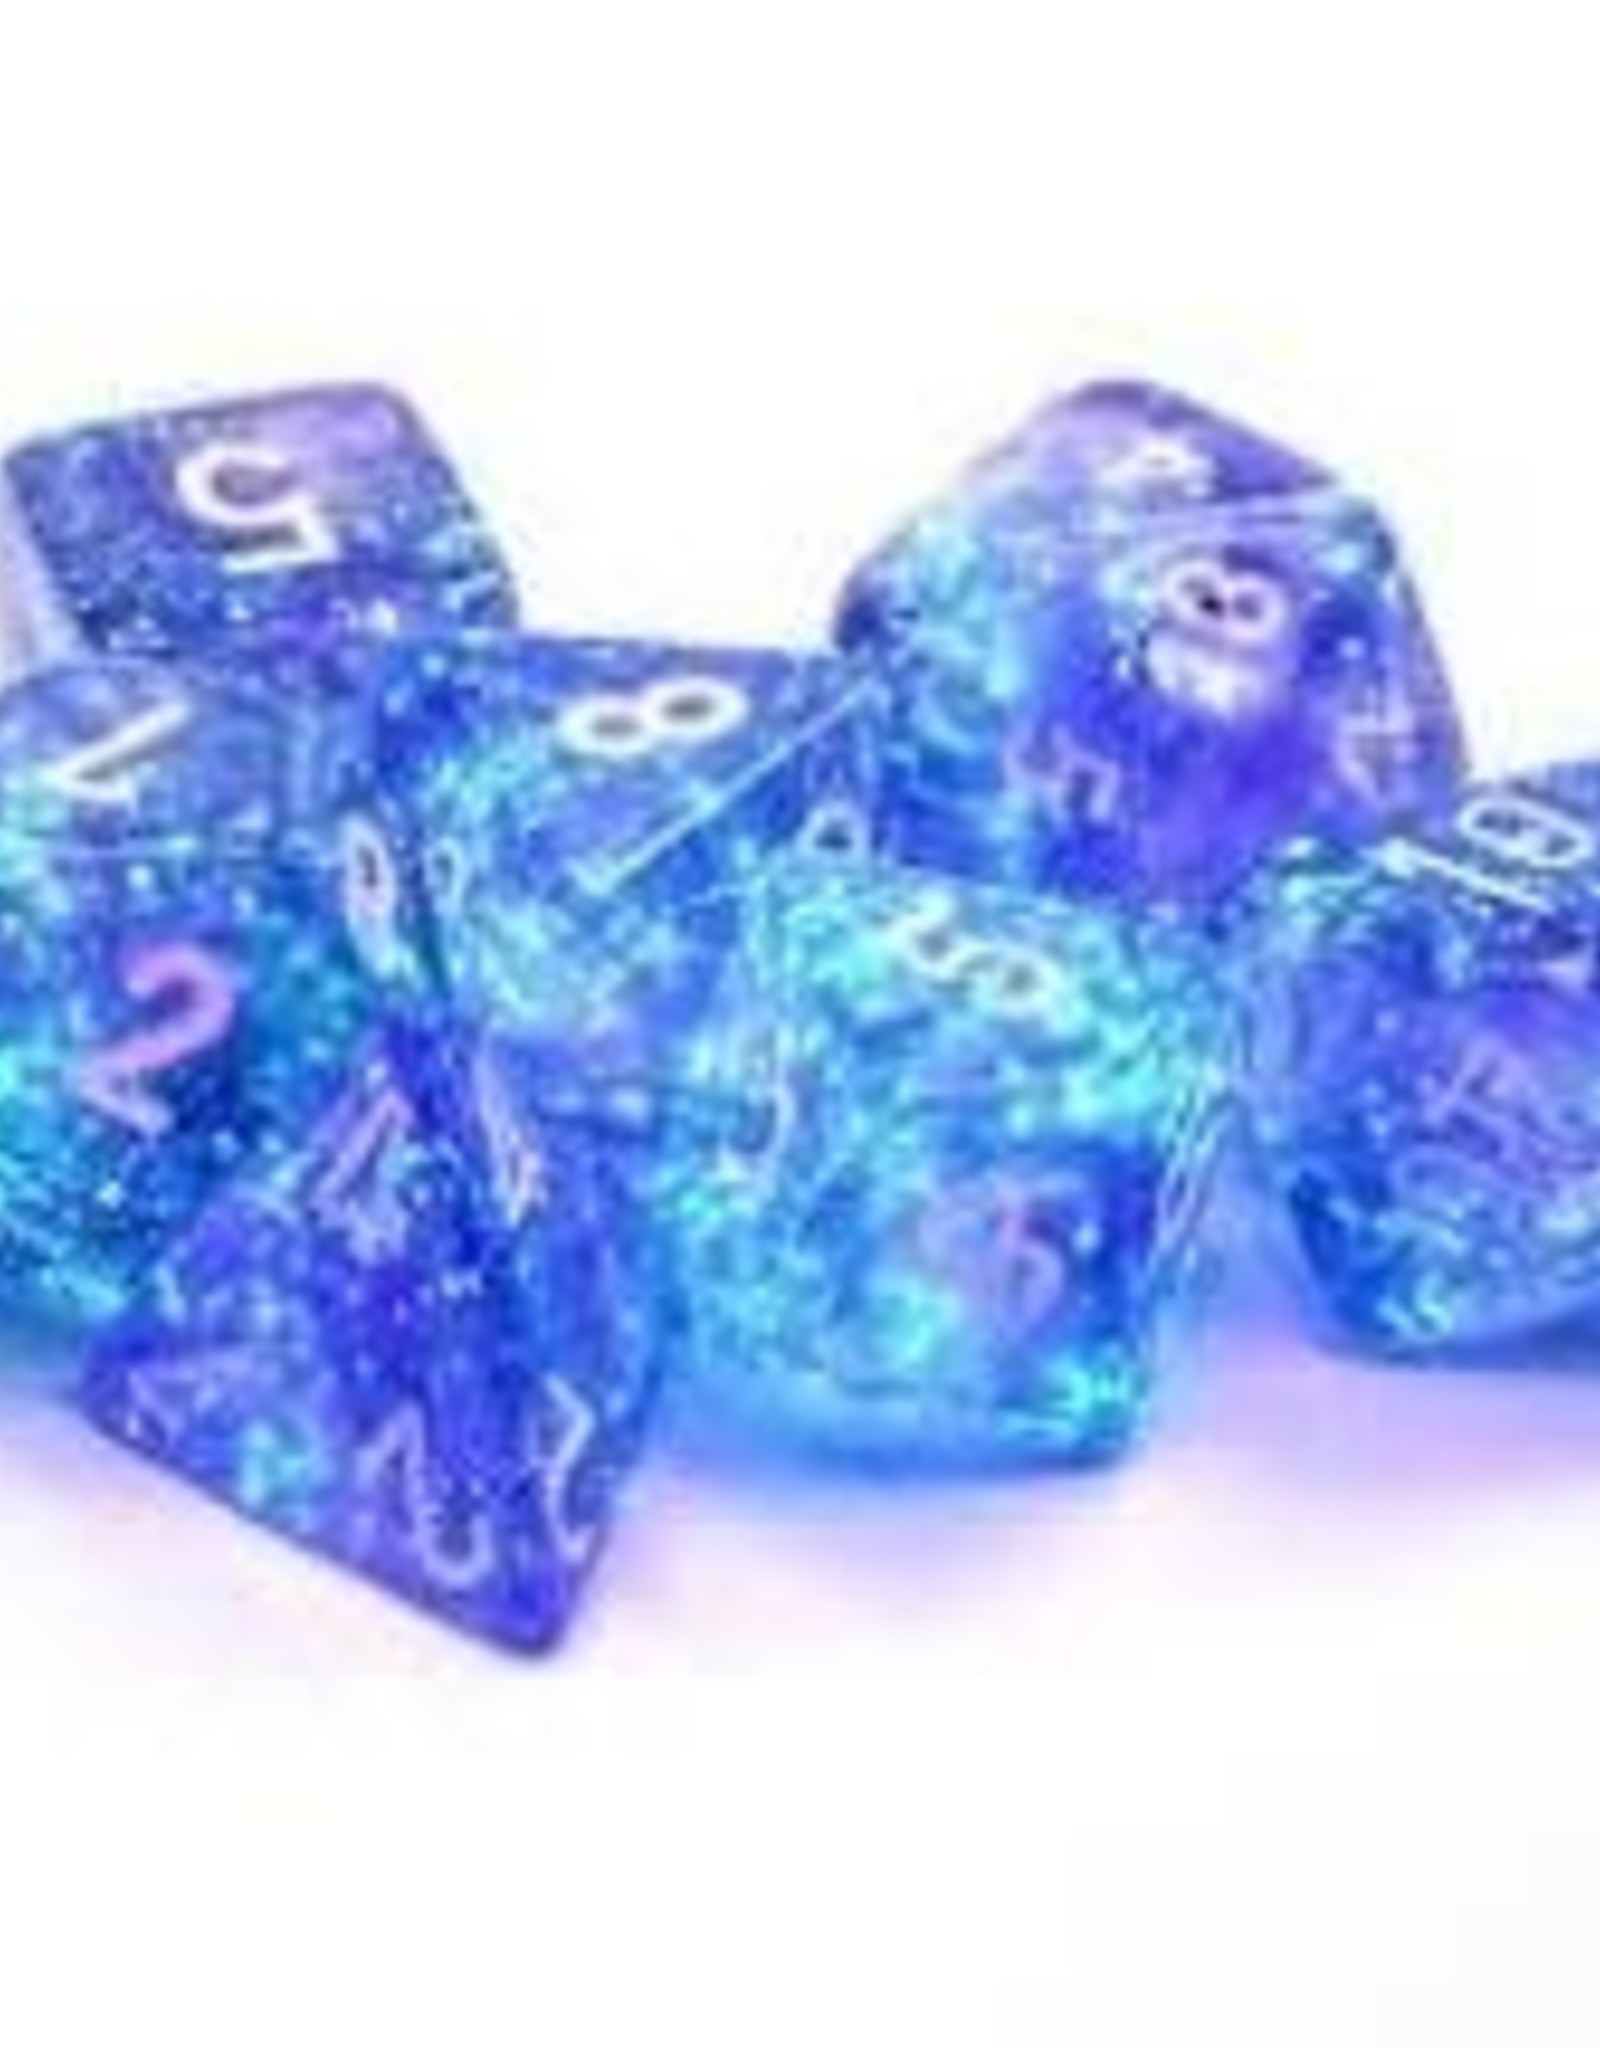 Chessex Borealis Luminary Poly 7 set: Purple w/ White